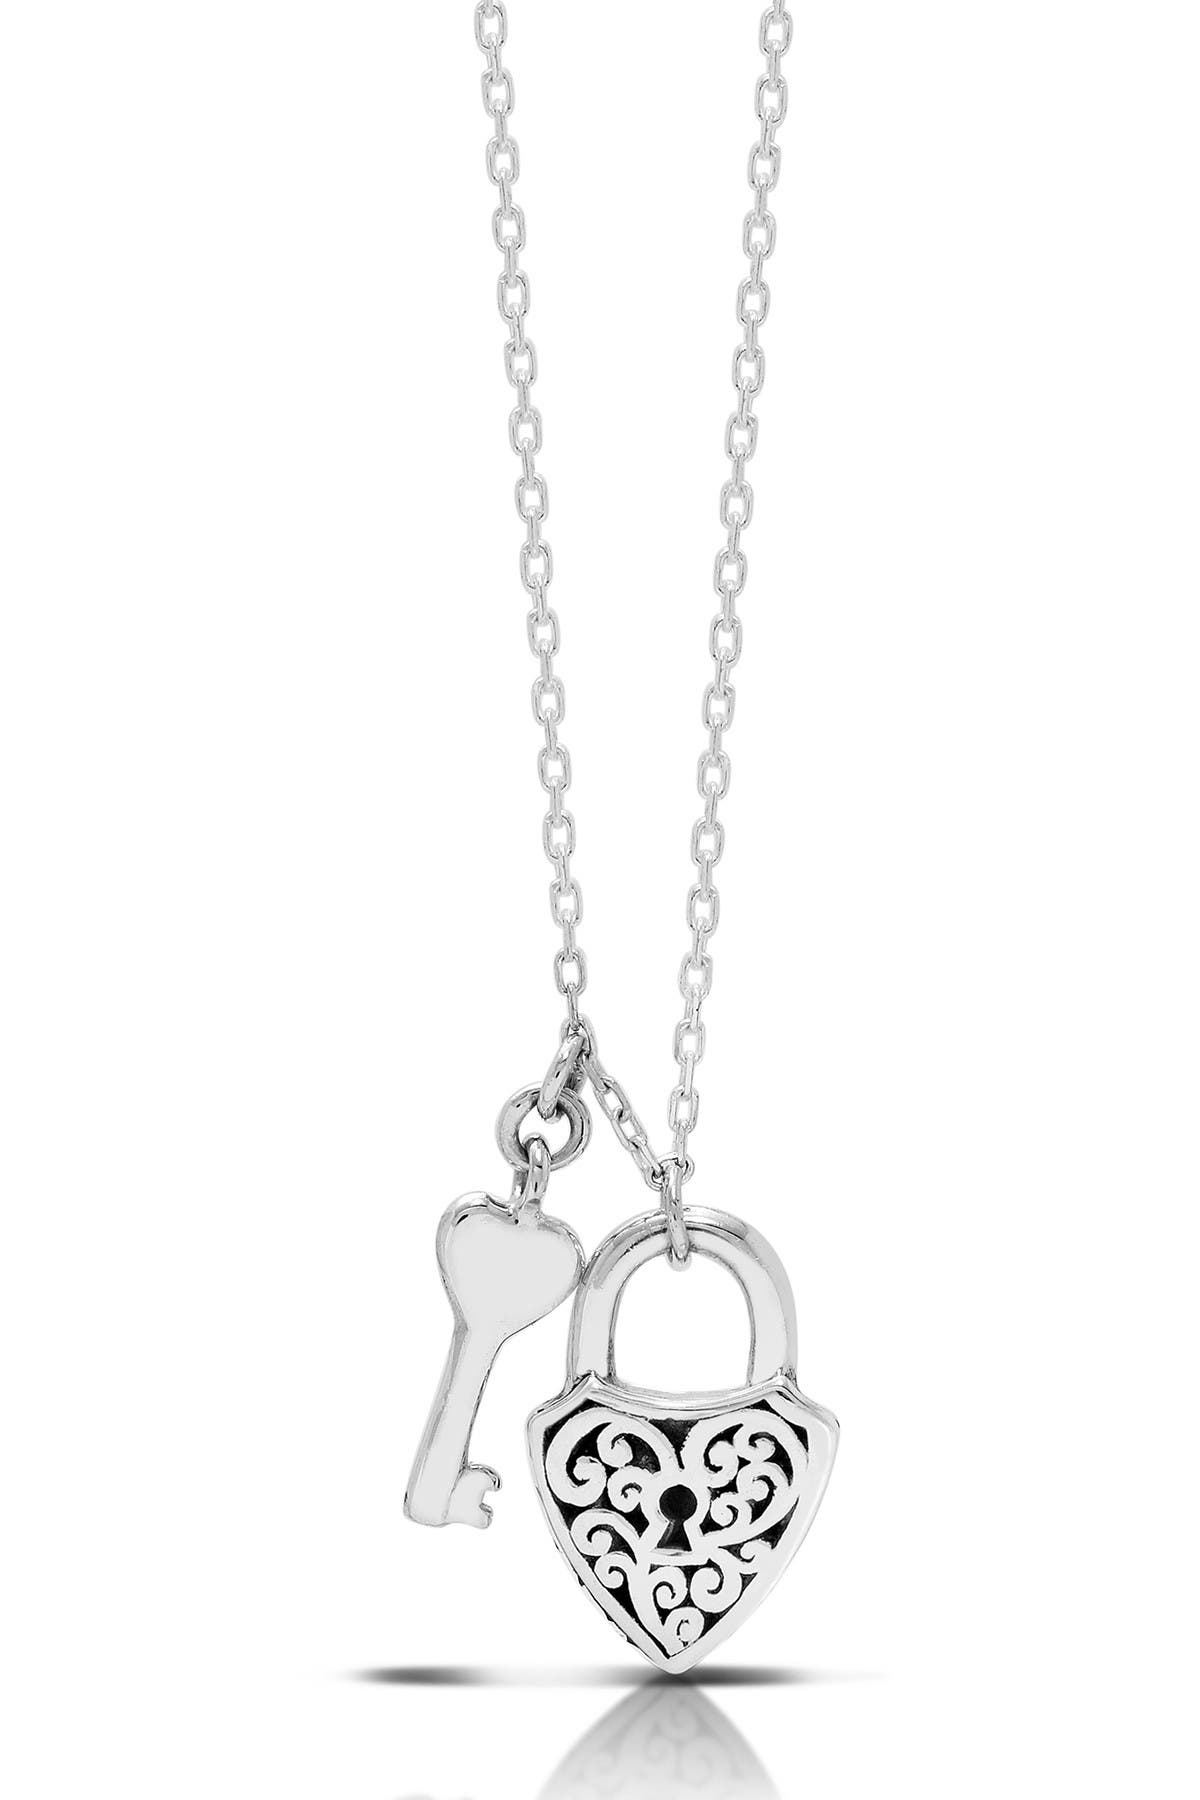 Image of Lois Hill Sterling Silver Baby Padlock Shield Key Pendant Necklace